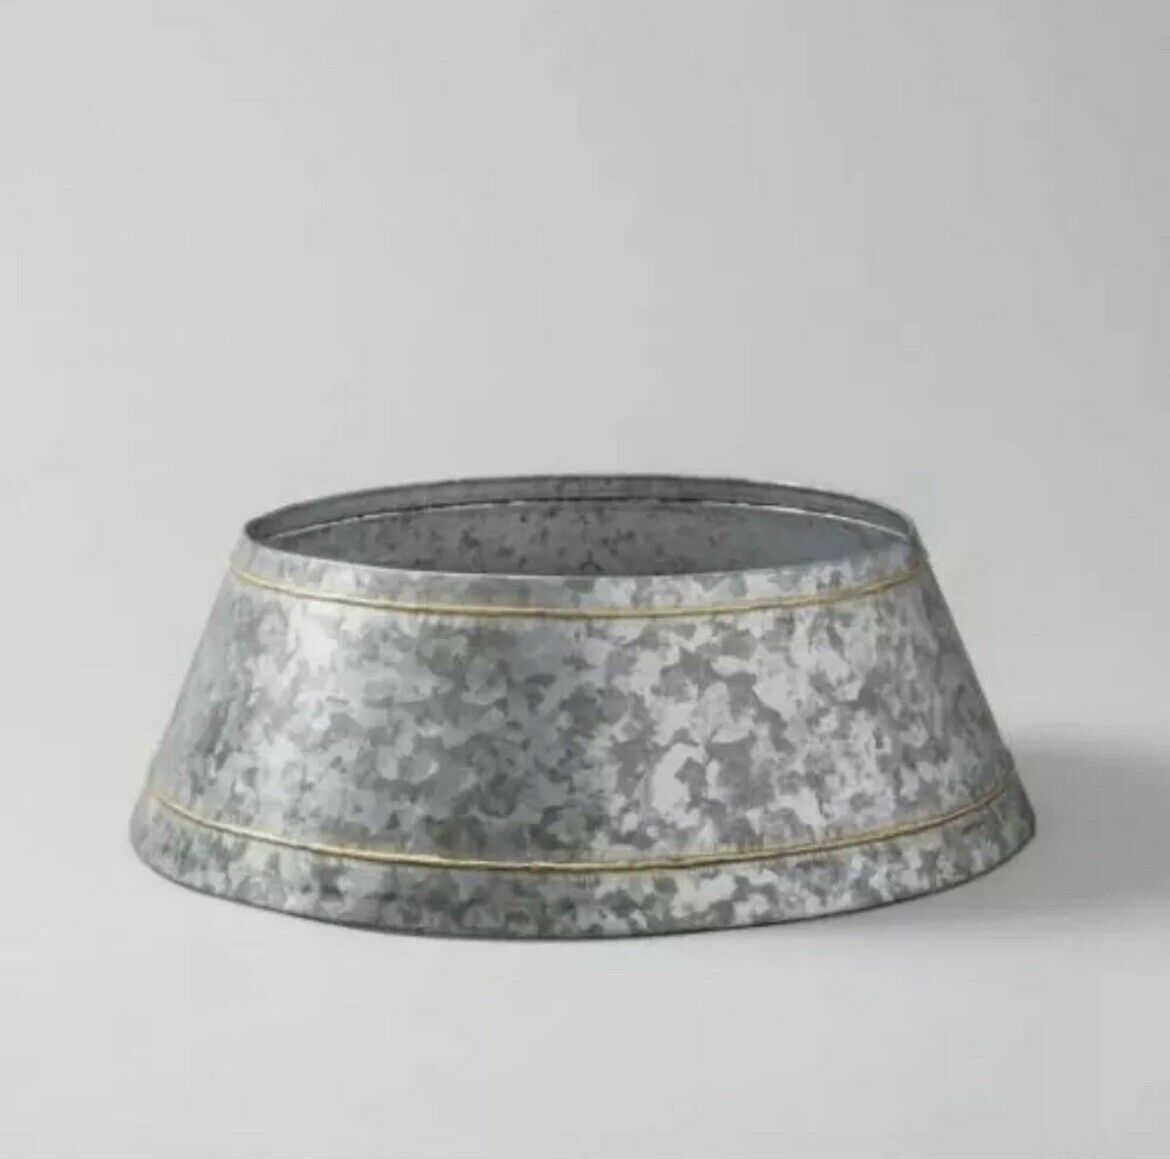 Hearth Hand With Magnolia Galvanized Christmas Tree Collar Skirt Joanna Gaines For Sale Online